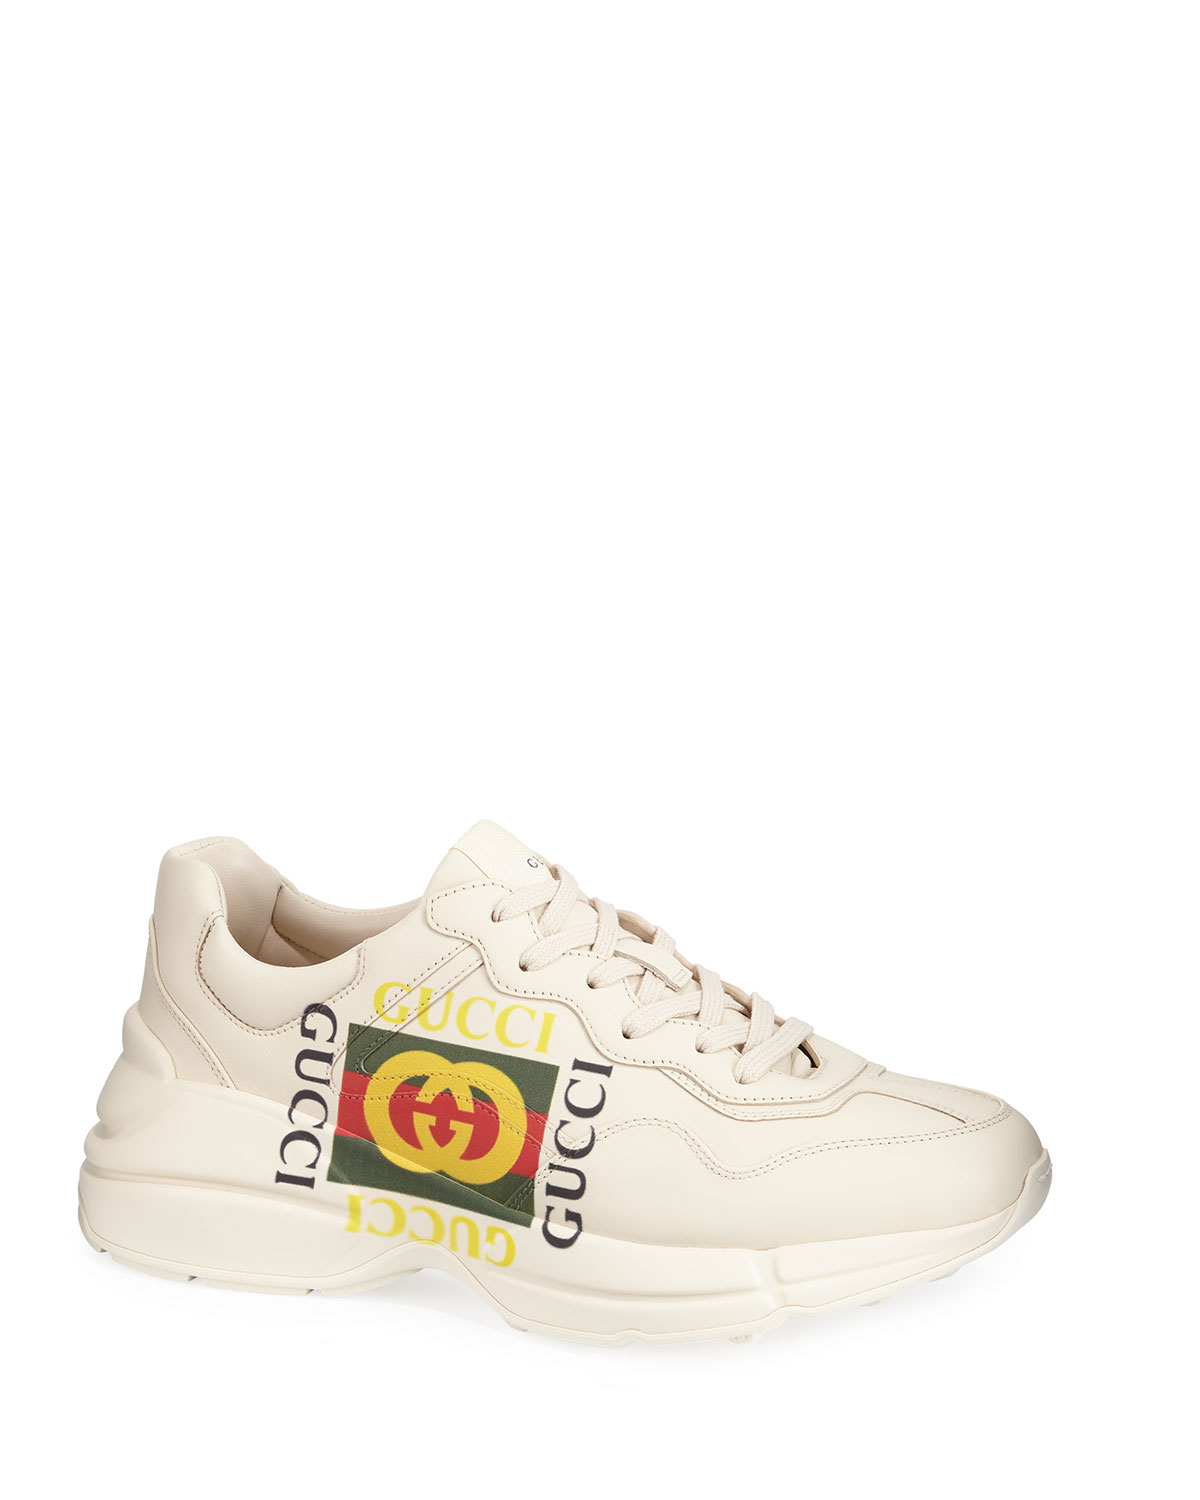 144c7e140ad Quick Look. Gucci · Gucci Logo Leather Sneaker